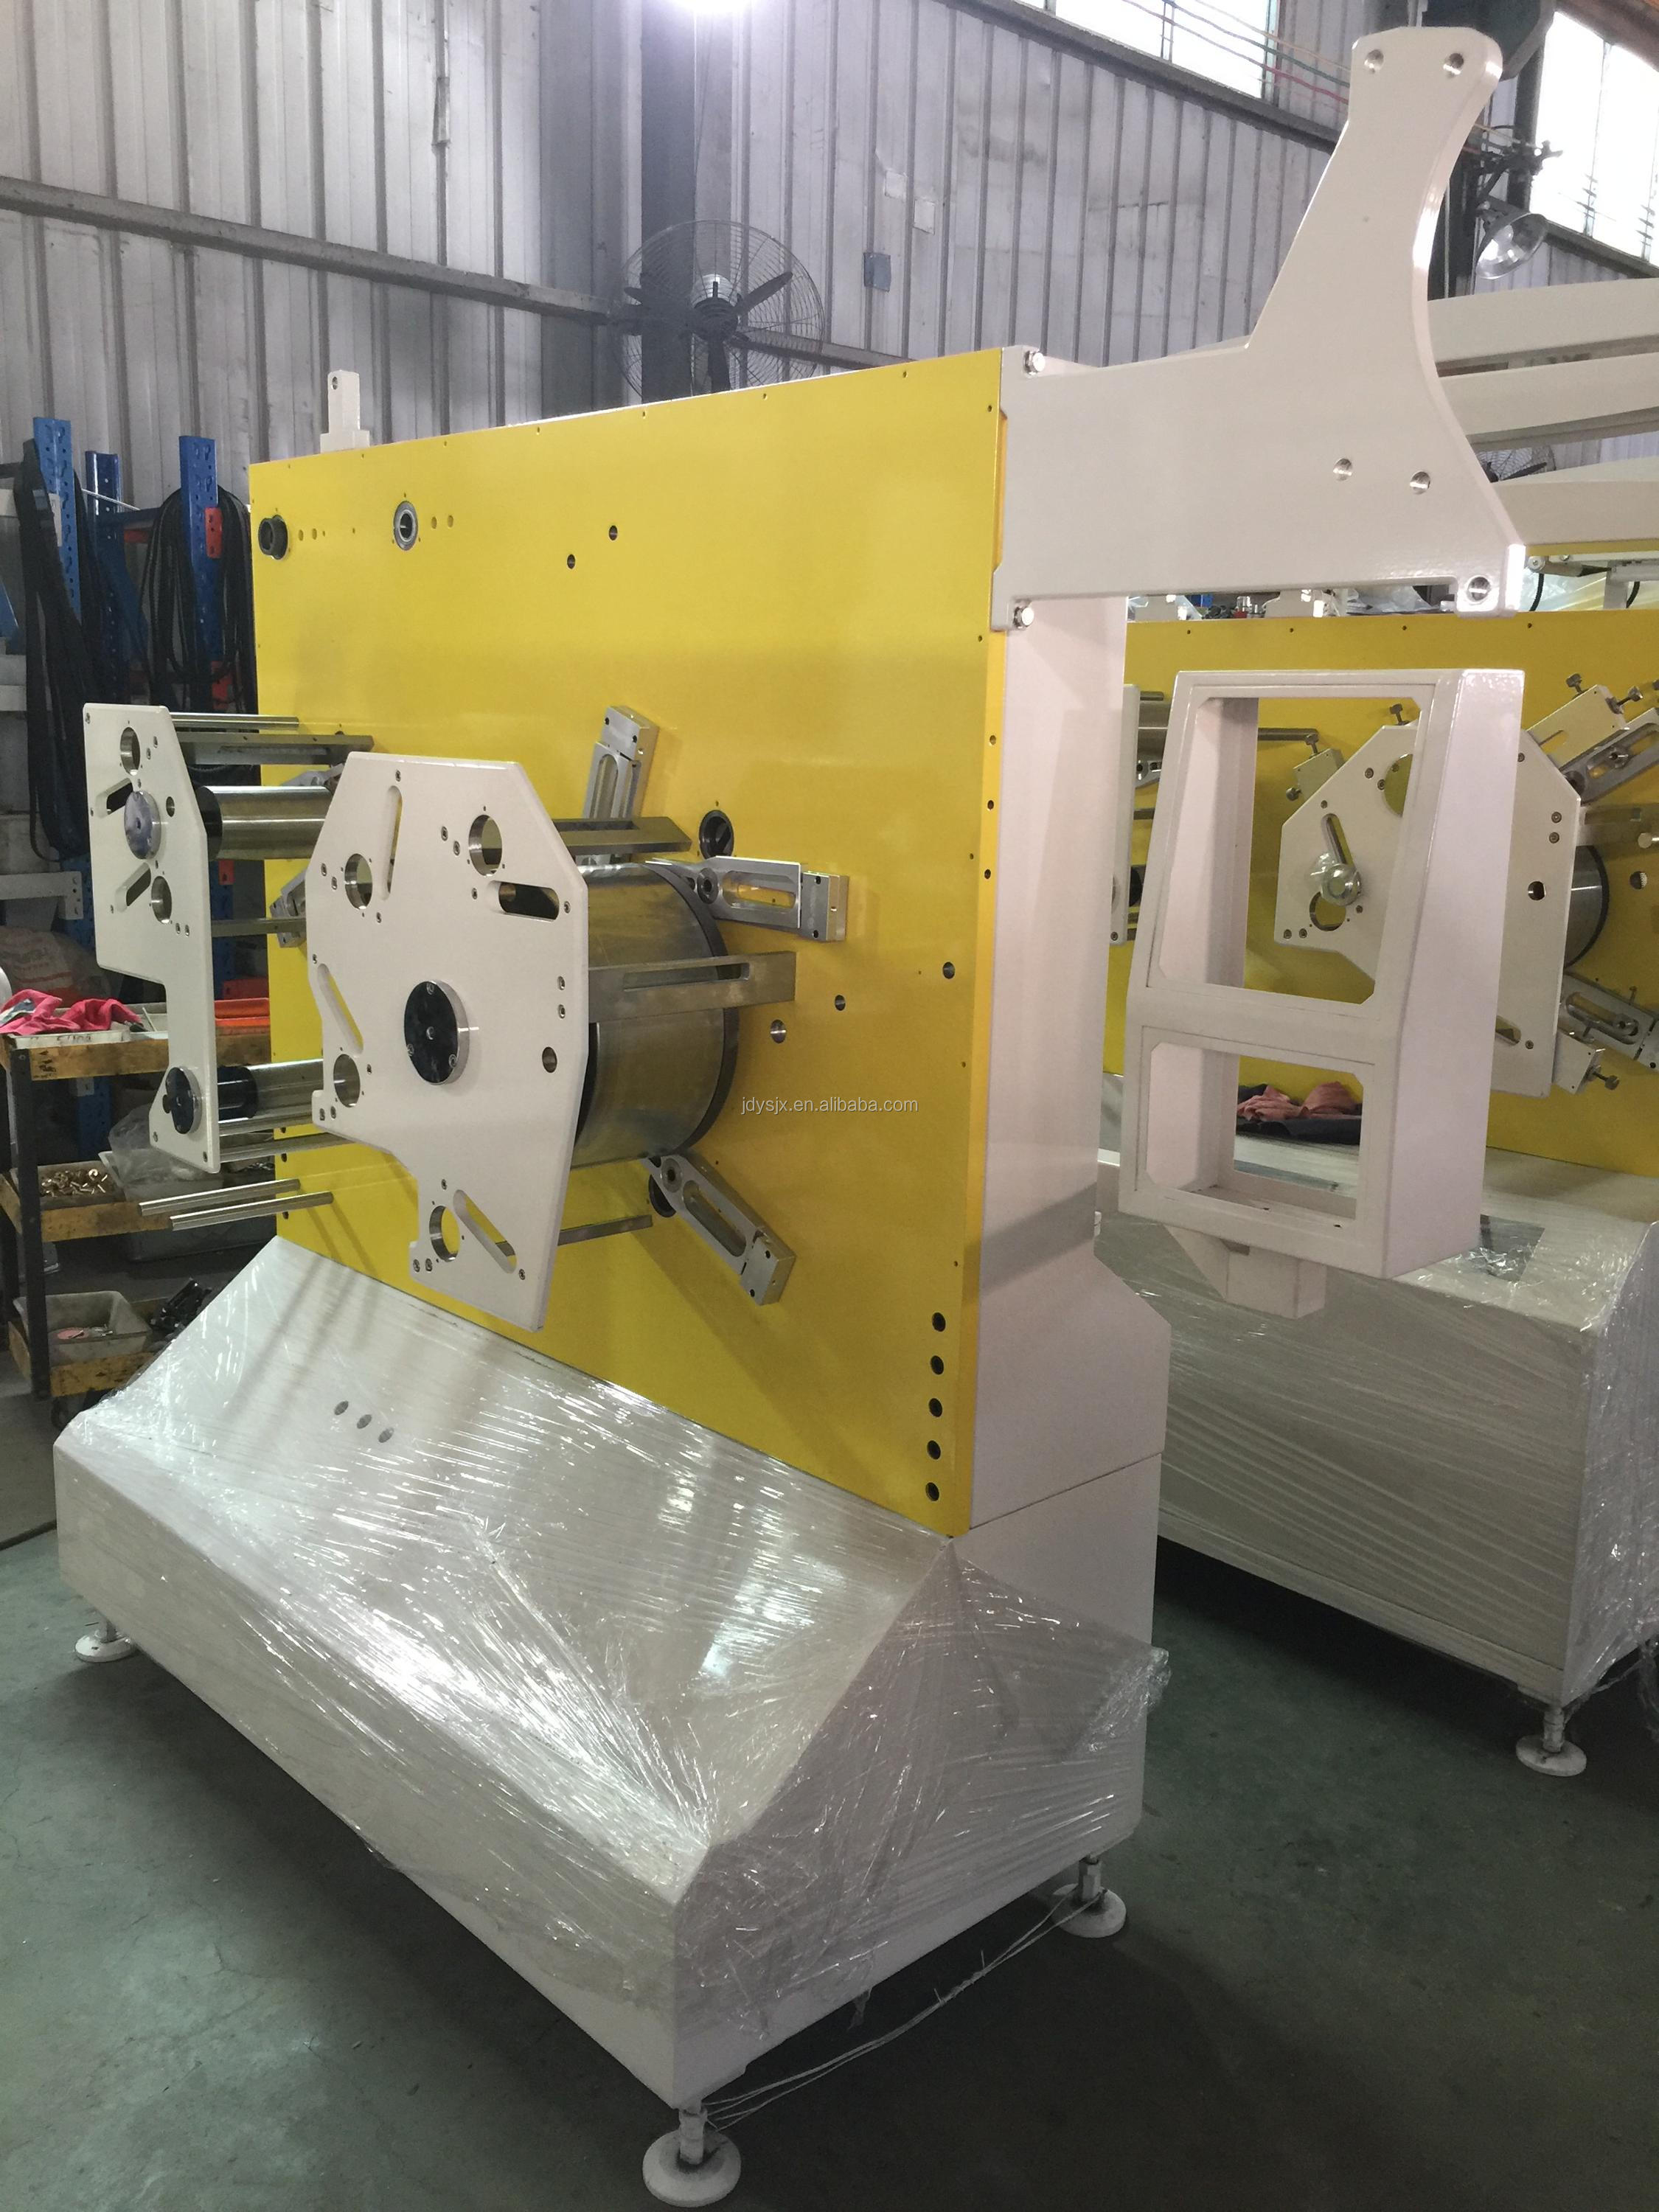 This is a graphic of Universal Fabric Label Printing Machine